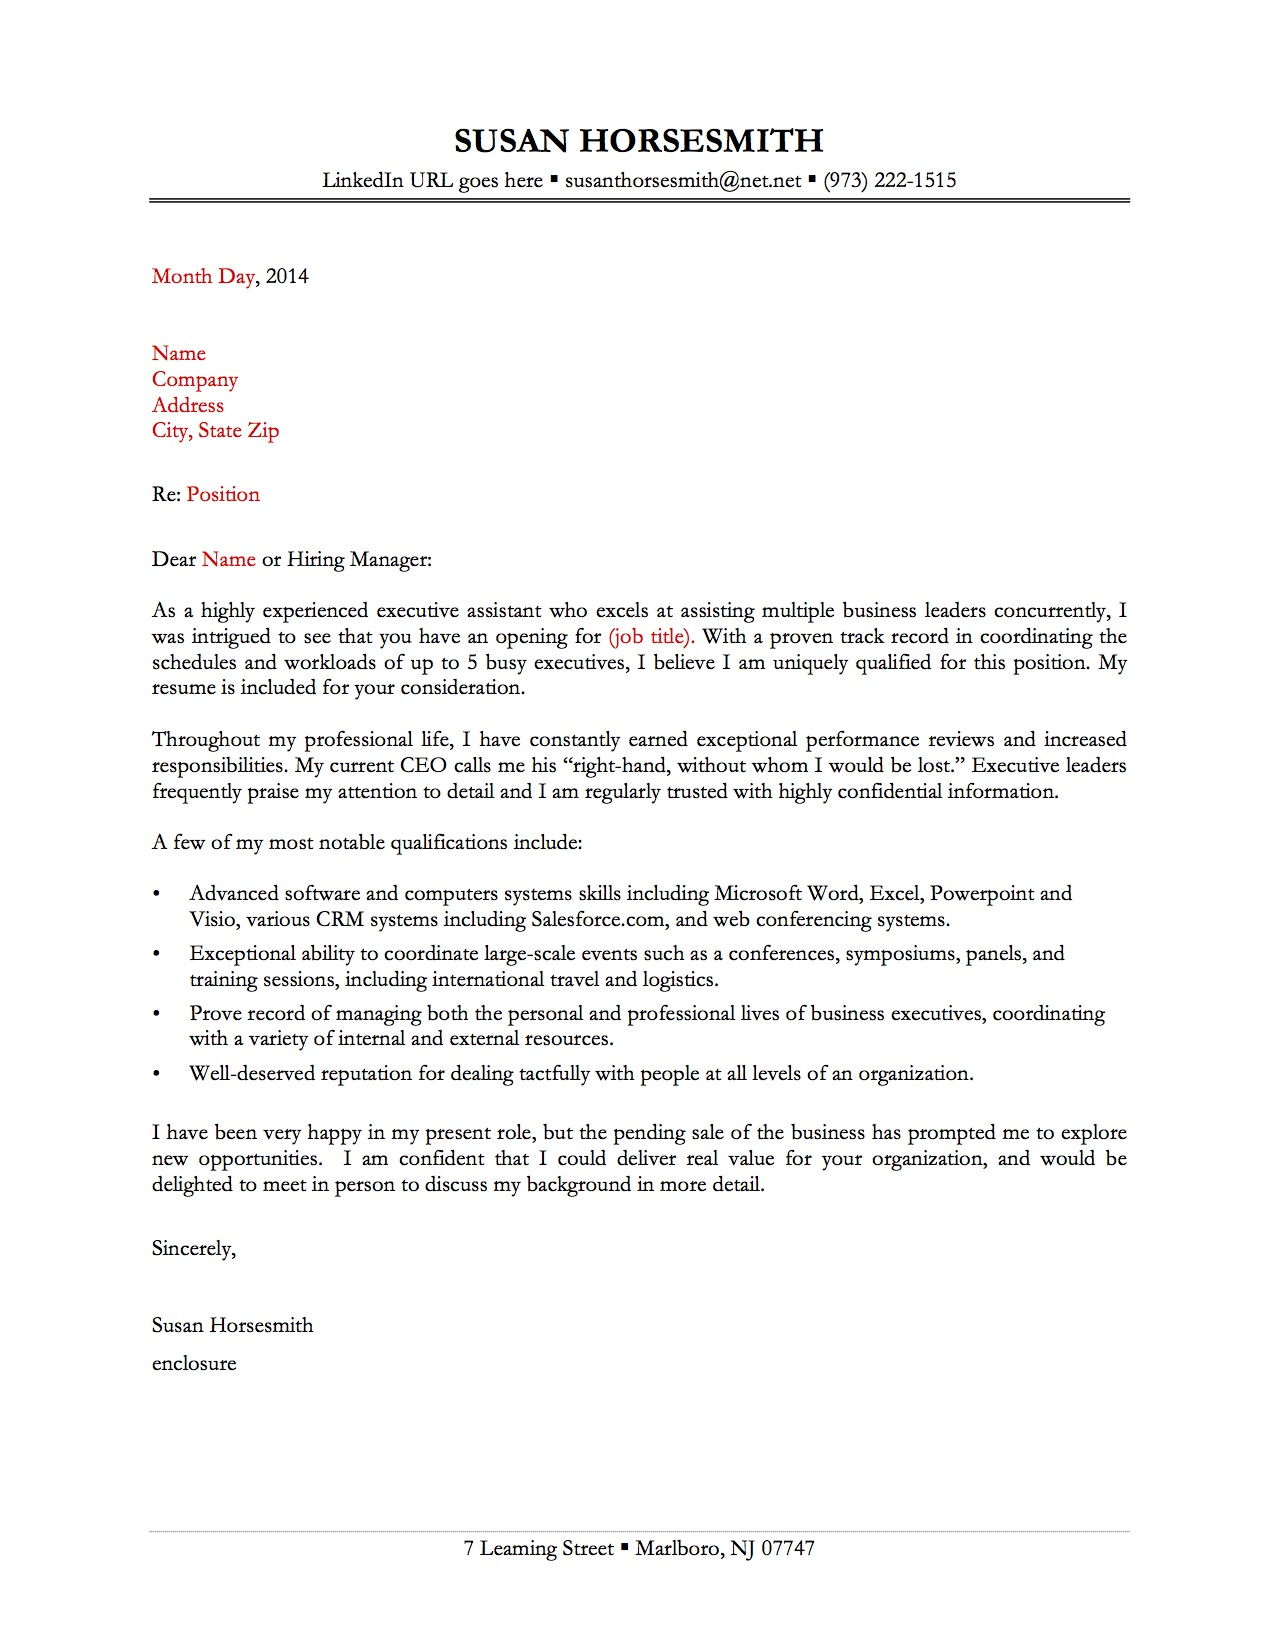 Cover Letter Assistant sample cover letter 1